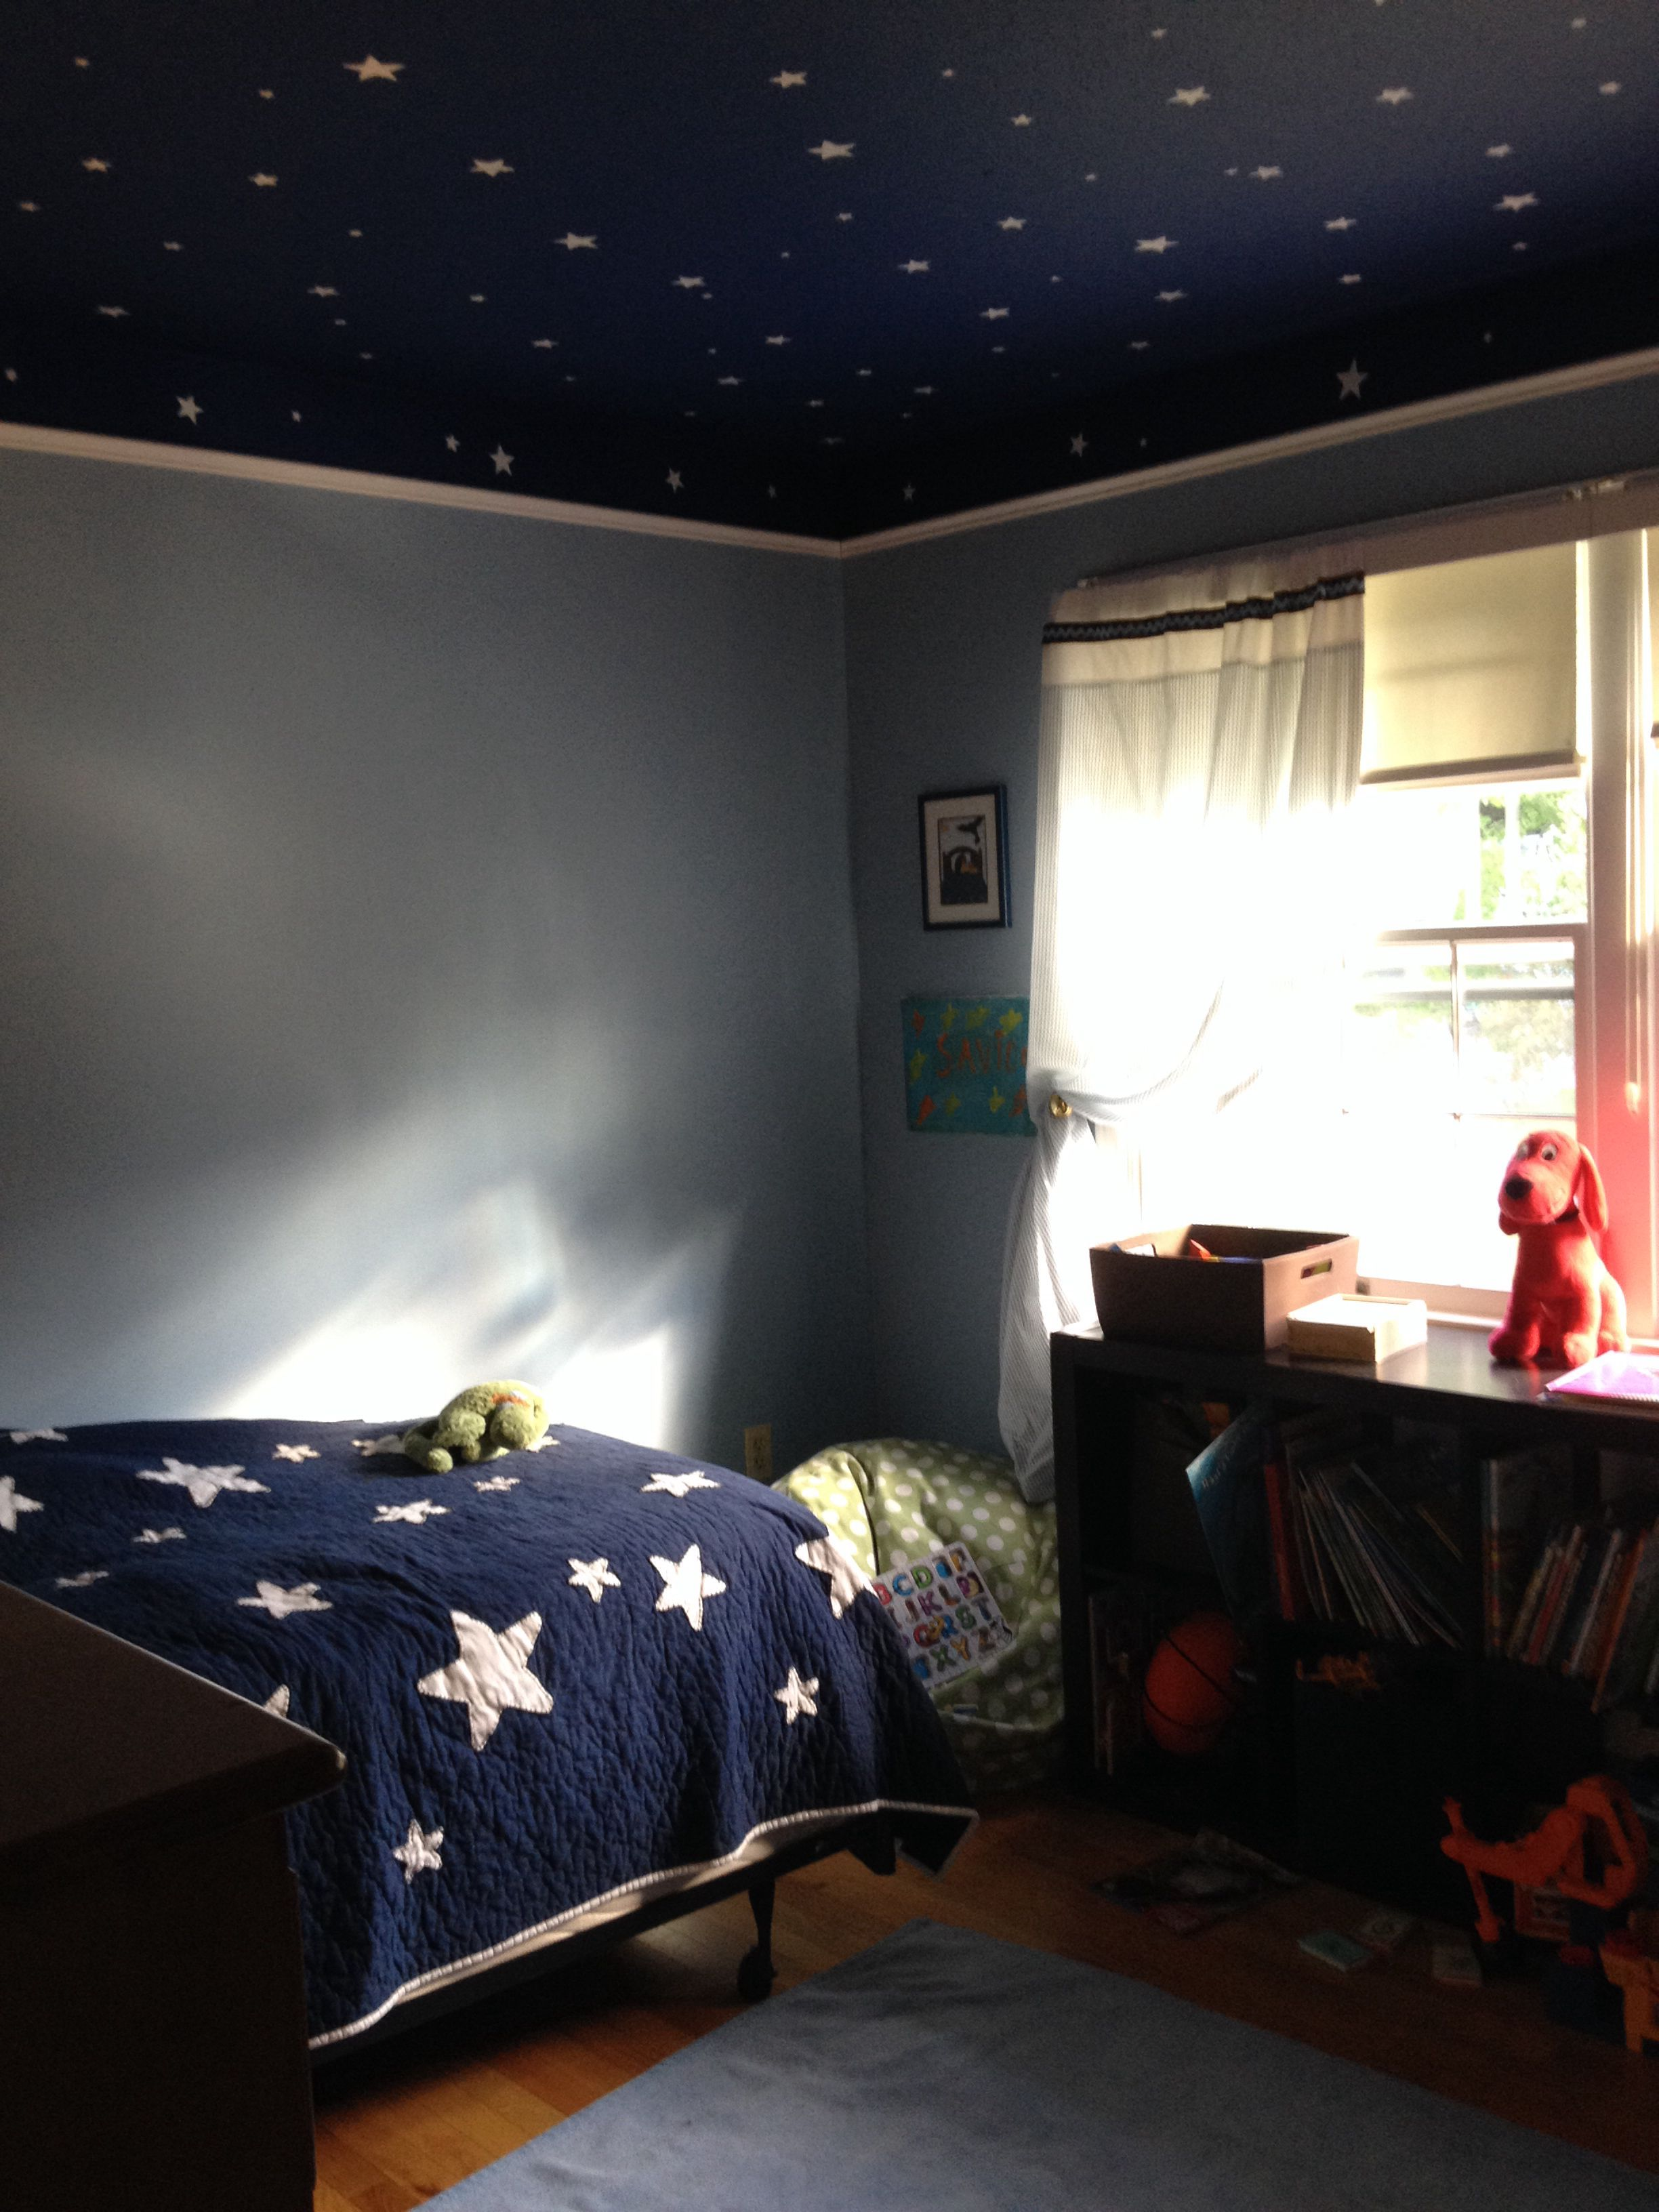 Girl And Boy Room Ideas 4 Year Old Space Room I Love The Walls And Ceiling